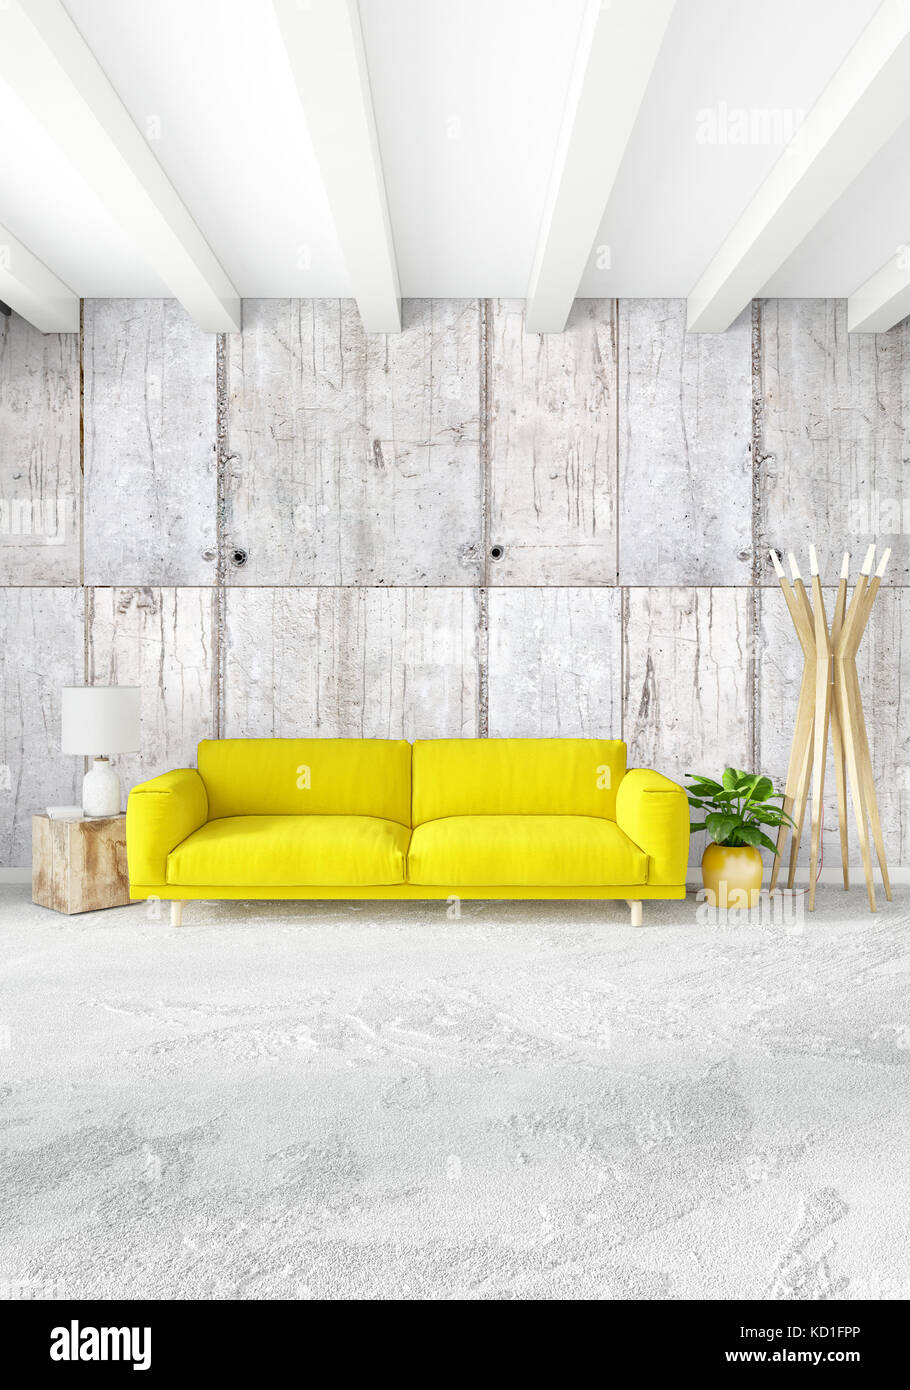 Yellow bedroom or livingroom in modern style interior design with exuding wall and stylish furniture 3d rendering